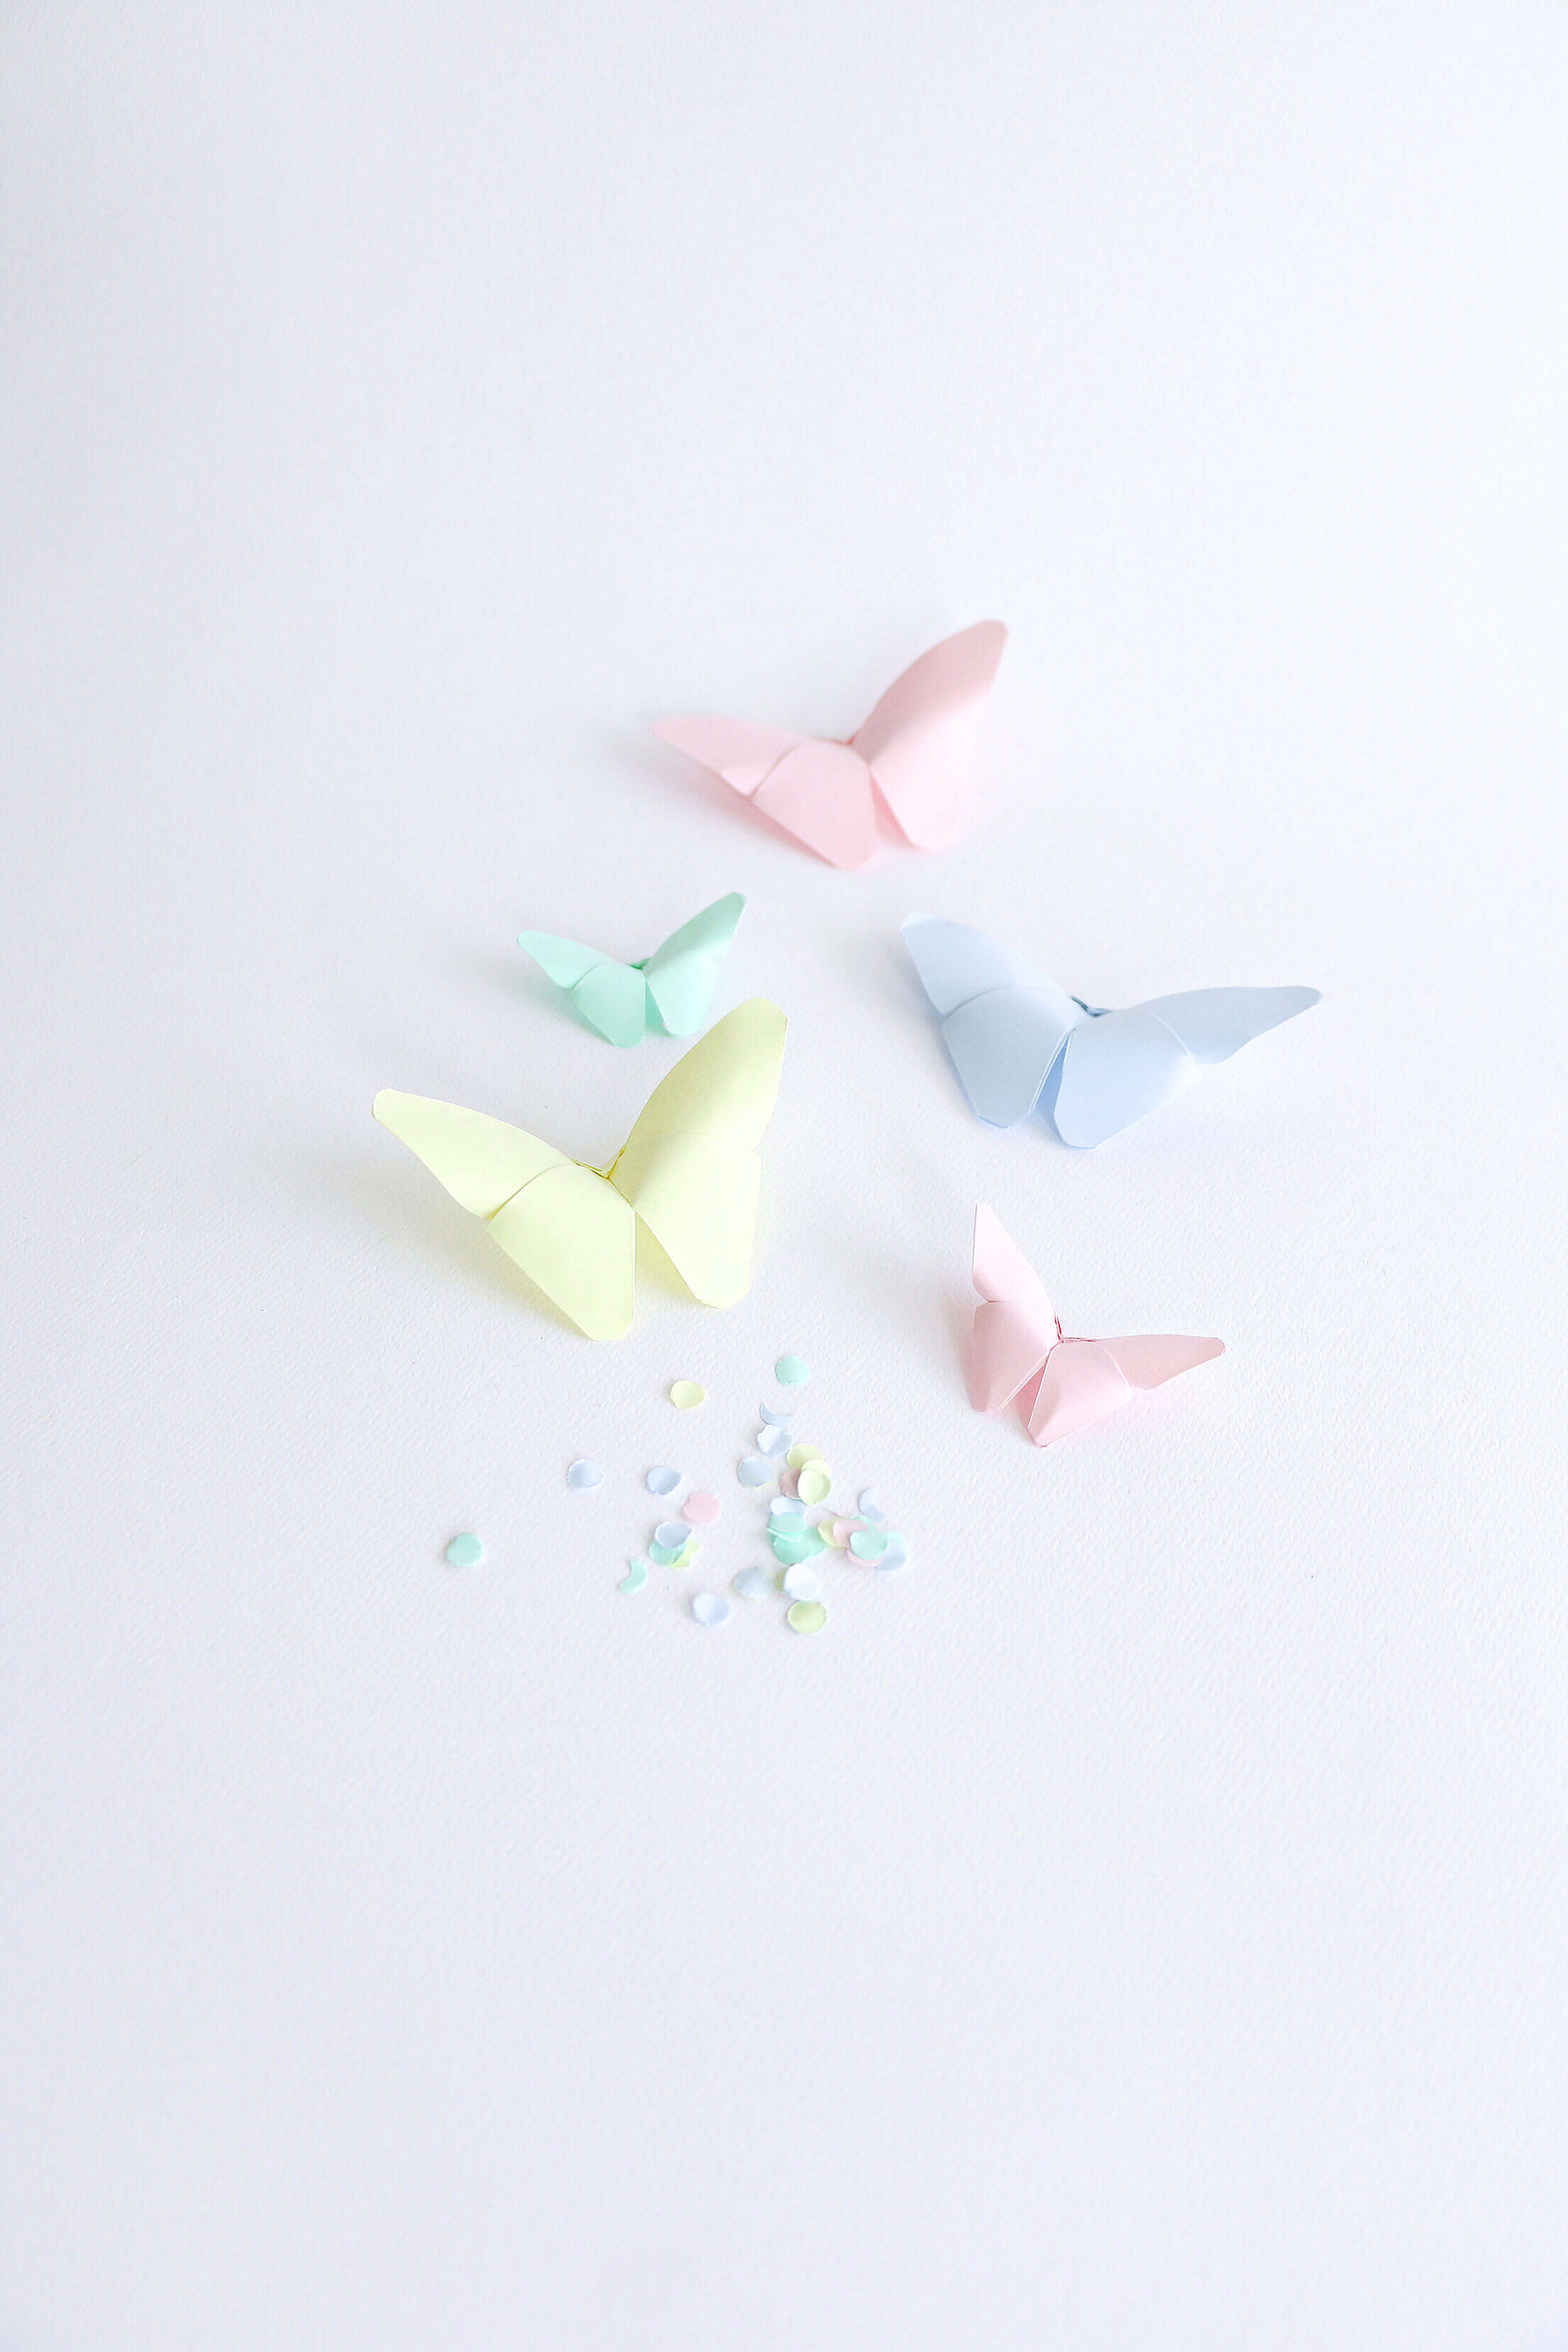 Colorful Origami Butterflies Free Stock Photo